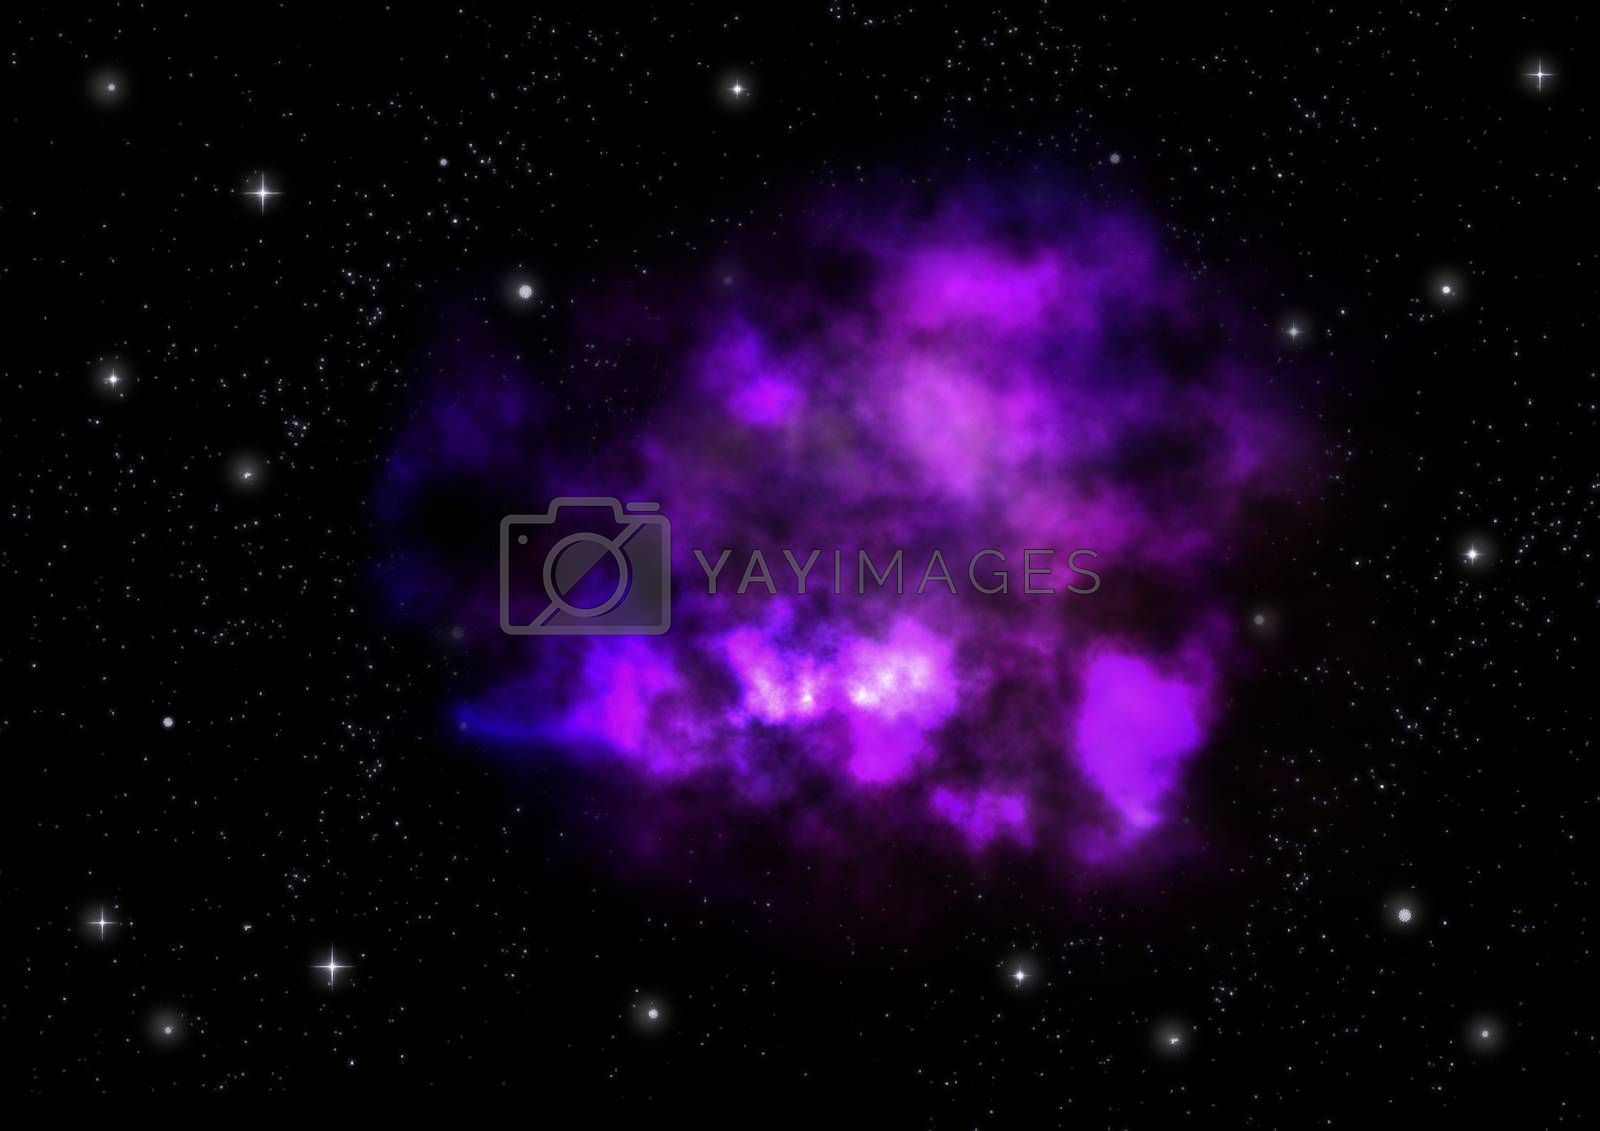 Royalty free image of Small part of an infinite star field by richter1910